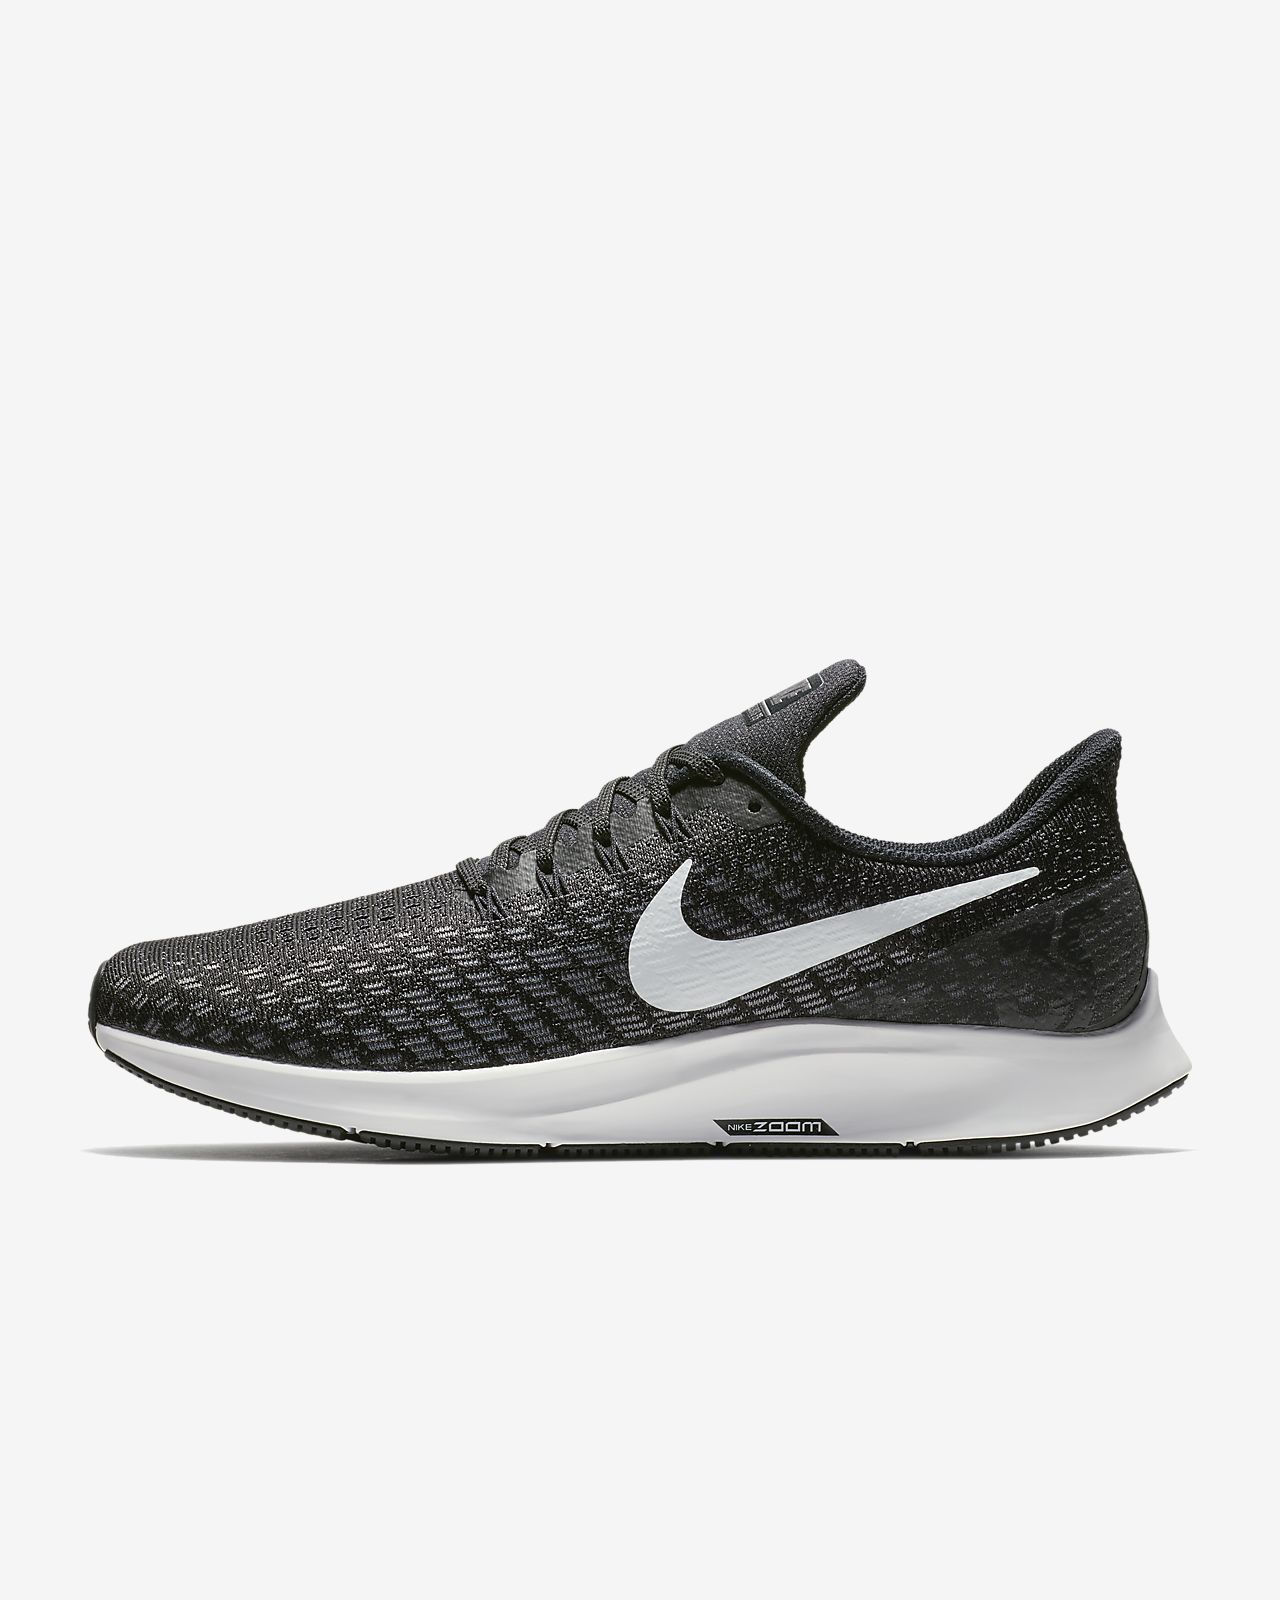 63cddc9f3353 Low Resolution Nike Air Zoom Pegasus 35 Men s Running Shoe Nike Air Zoom  Pegasus 35 Men s Running Shoe